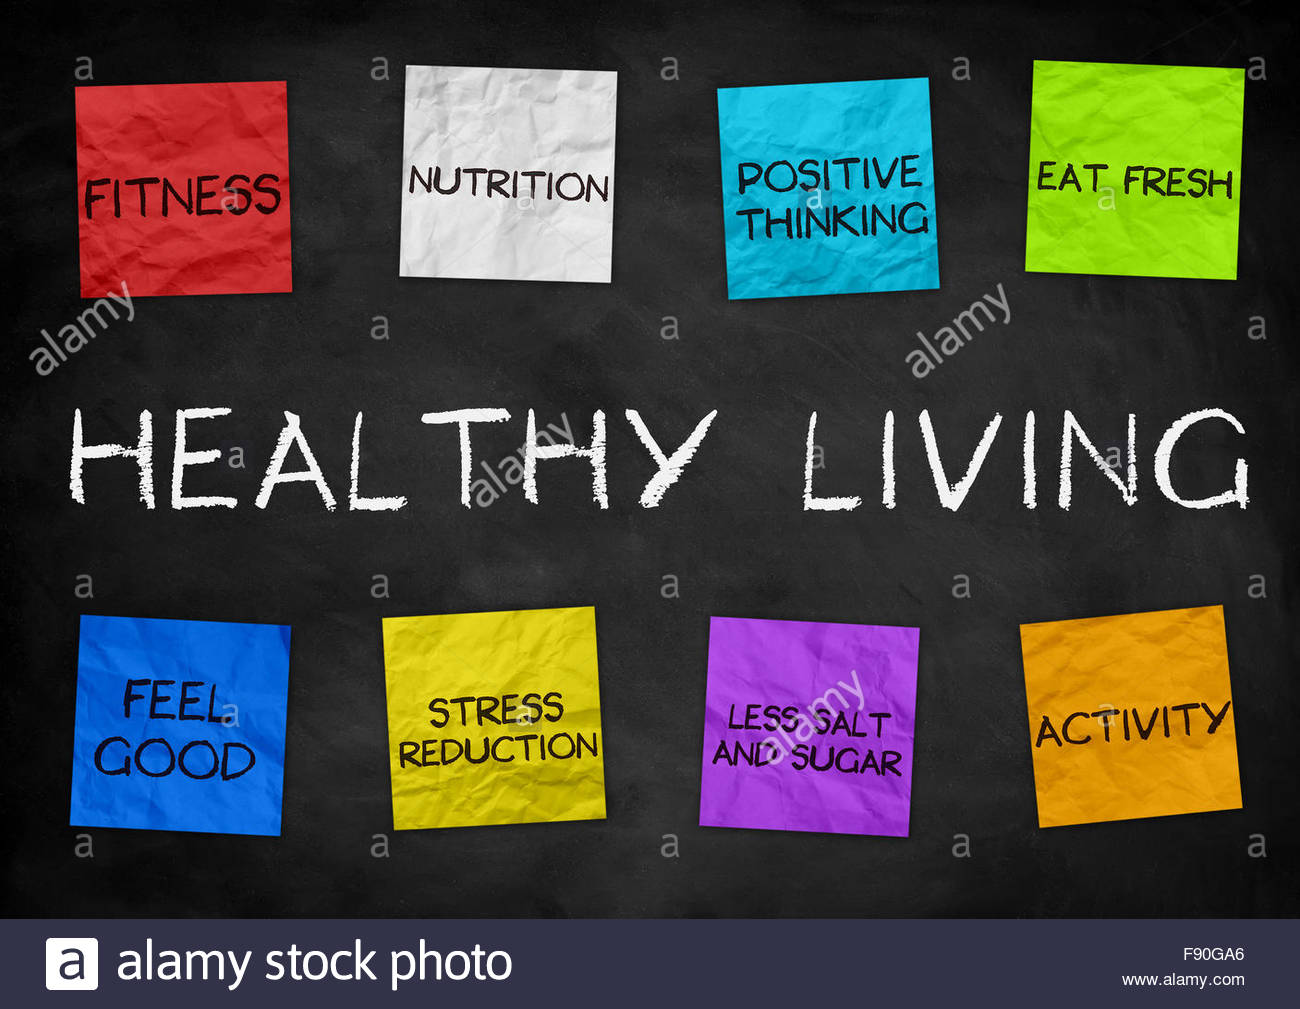 Healthy Living - illustration background - Stock Image